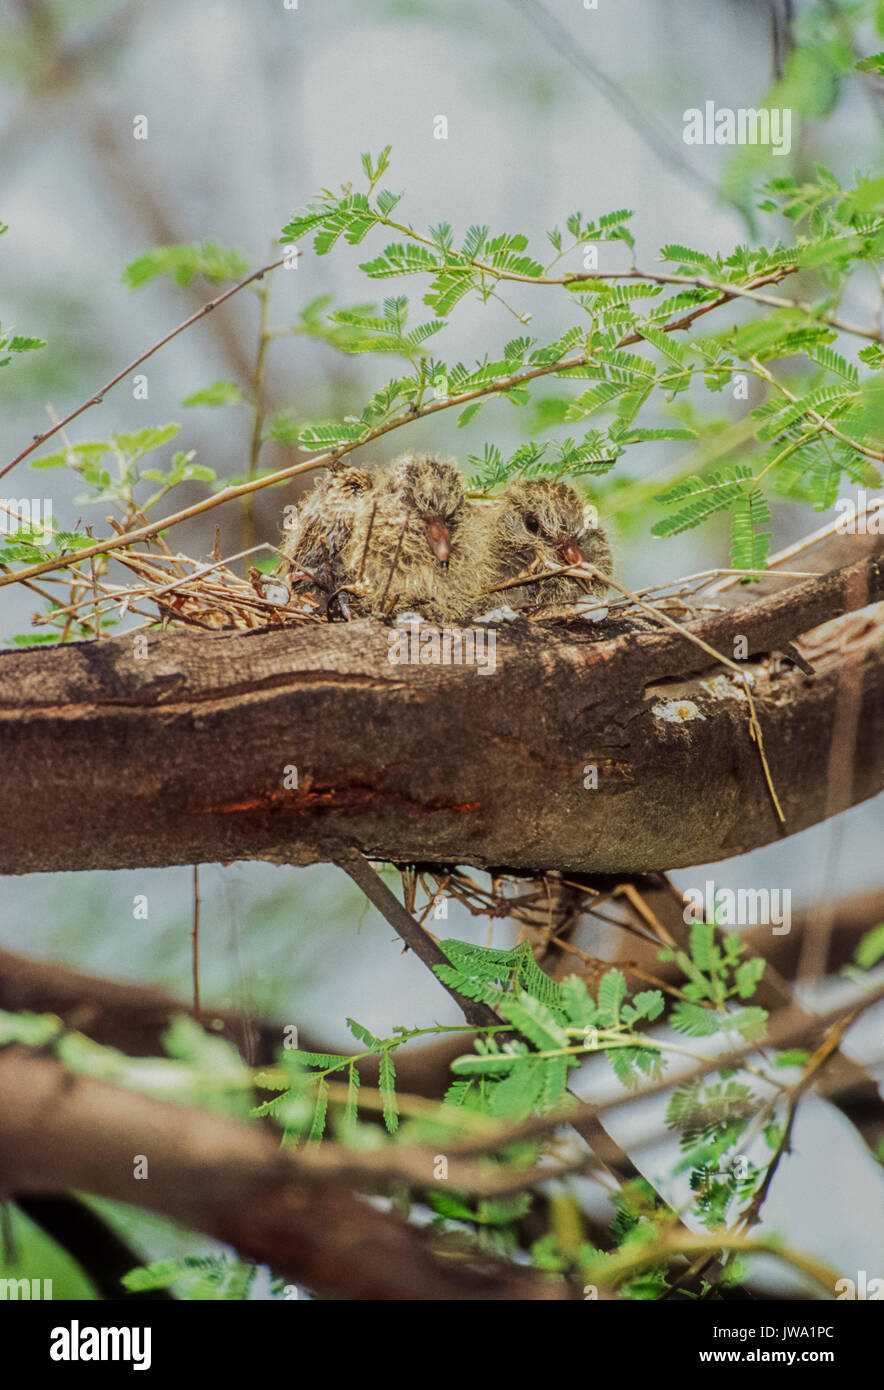 two Collared Dove squabs,(Streptopelia decaocto), perched on branch,Keoladeo Ghana National Park, Bharatpur, Rajasthan, India - Stock Image